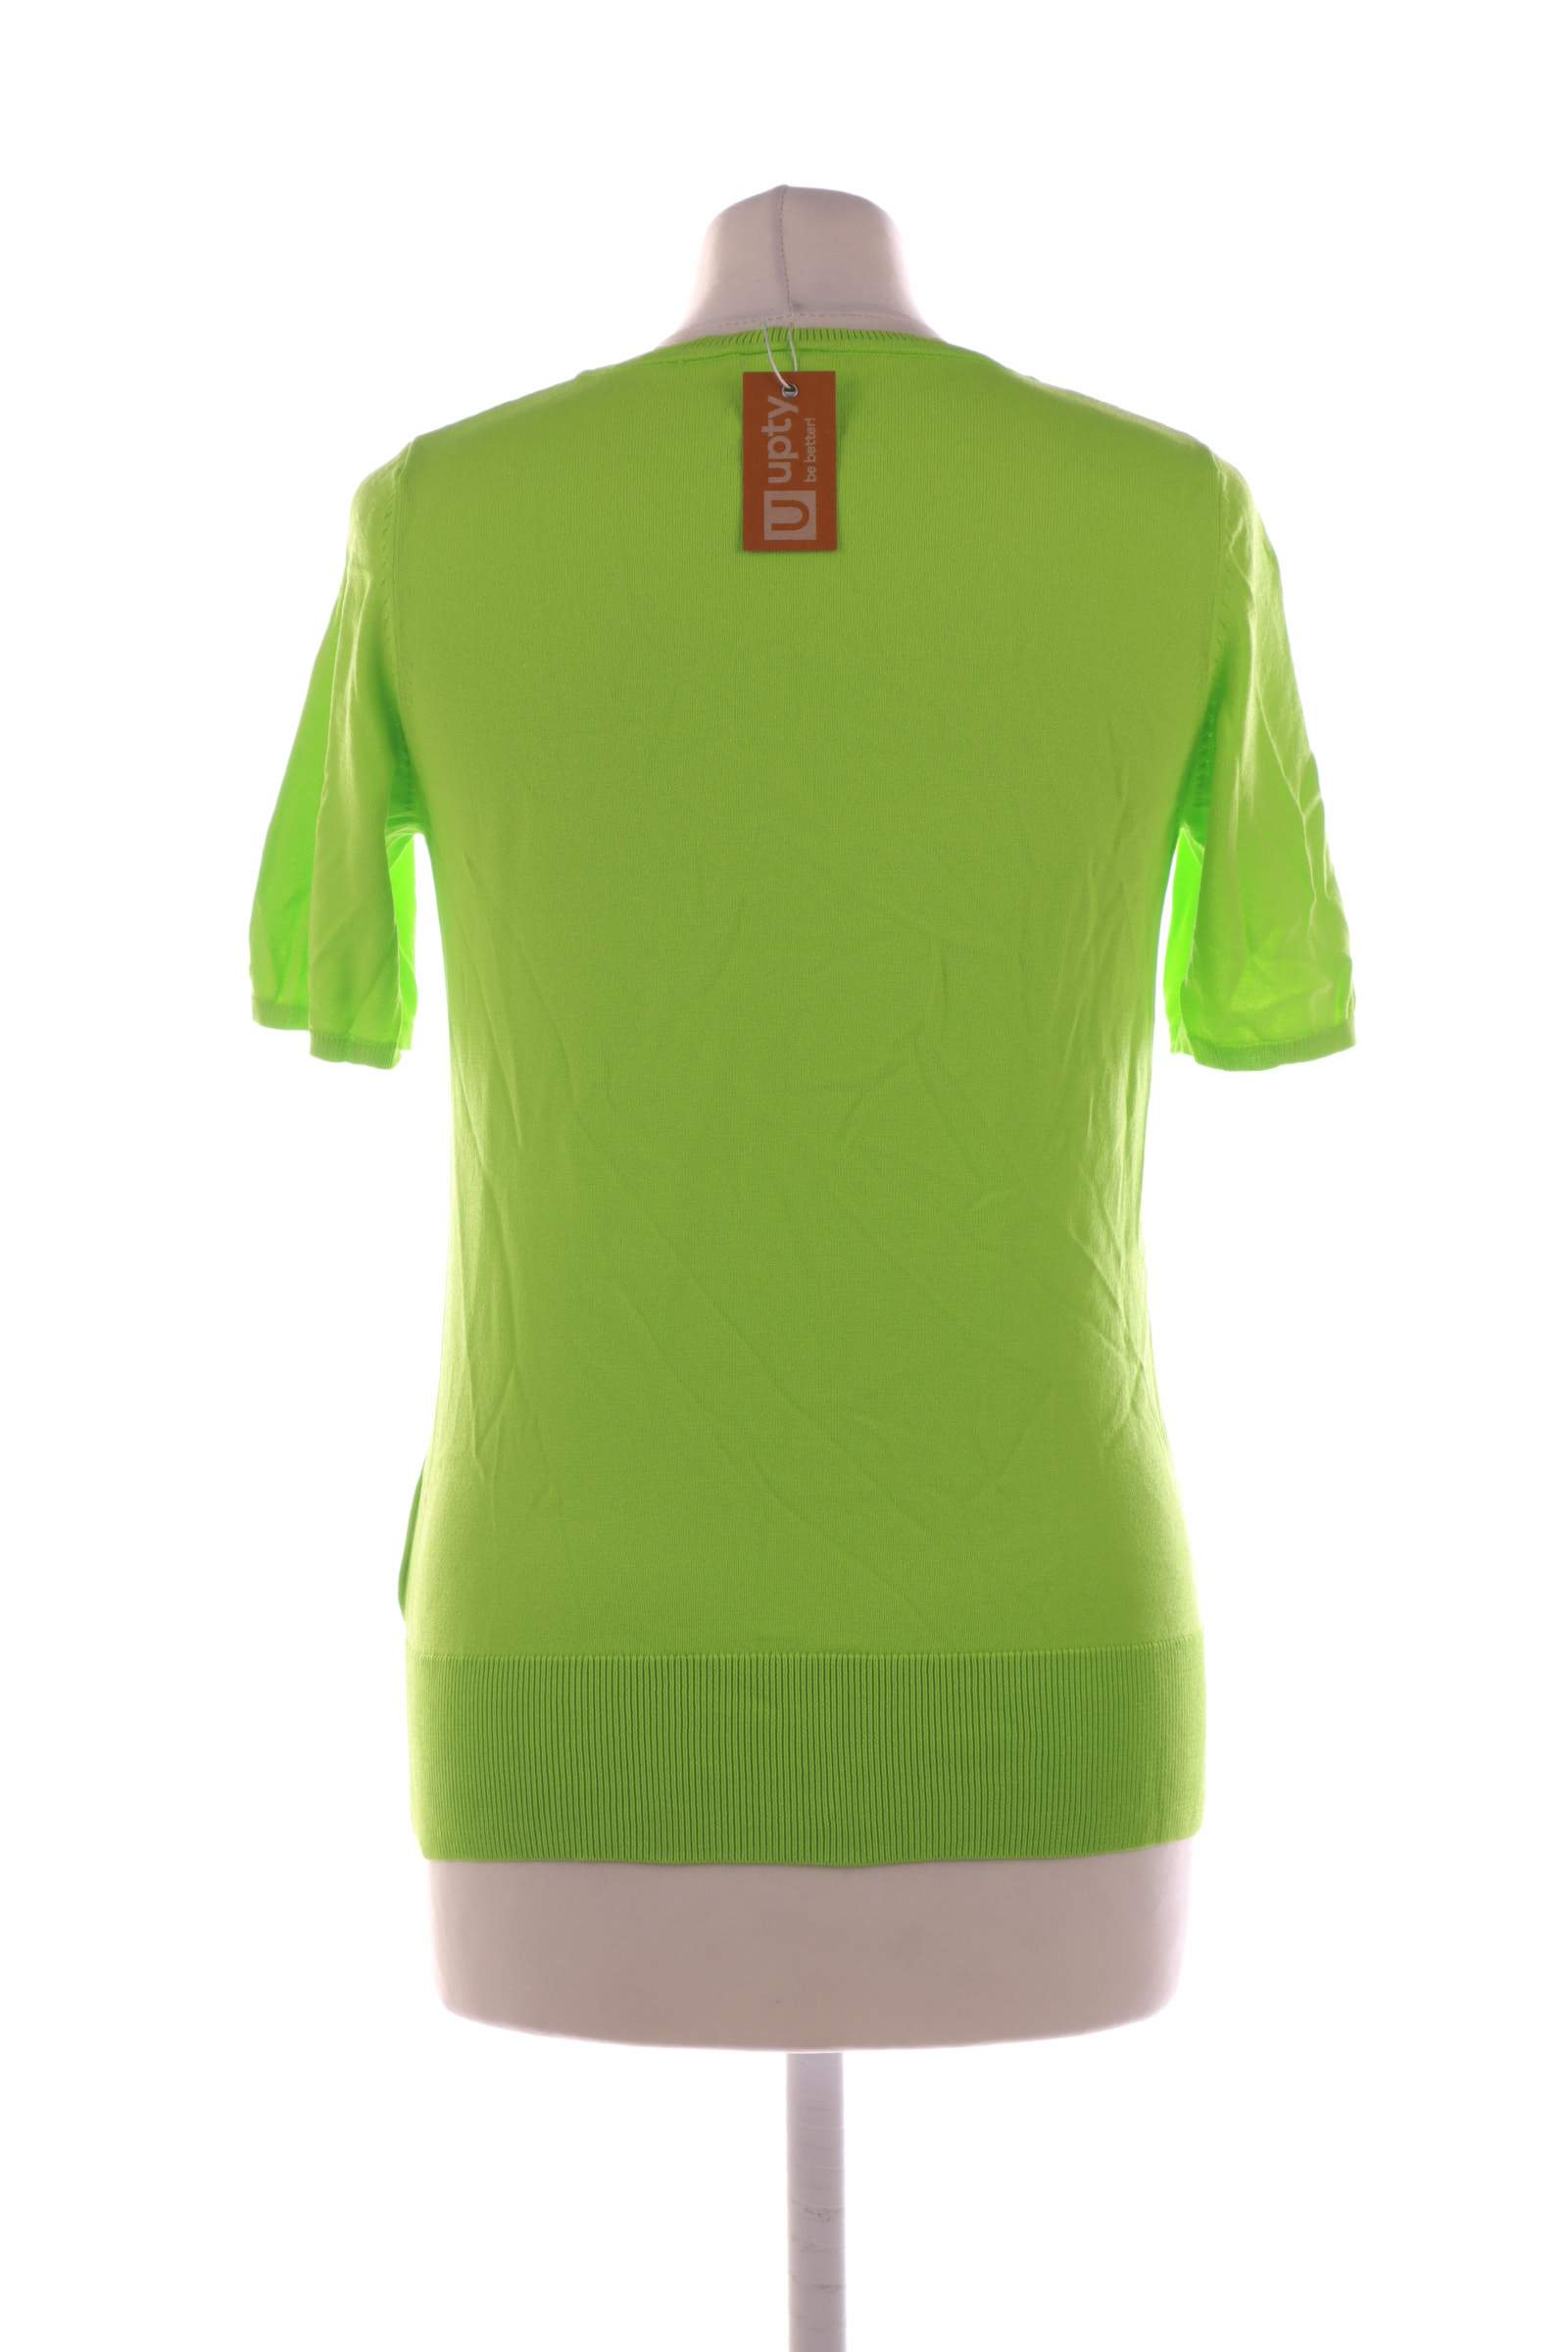 Mayerline Green Top - upty.store